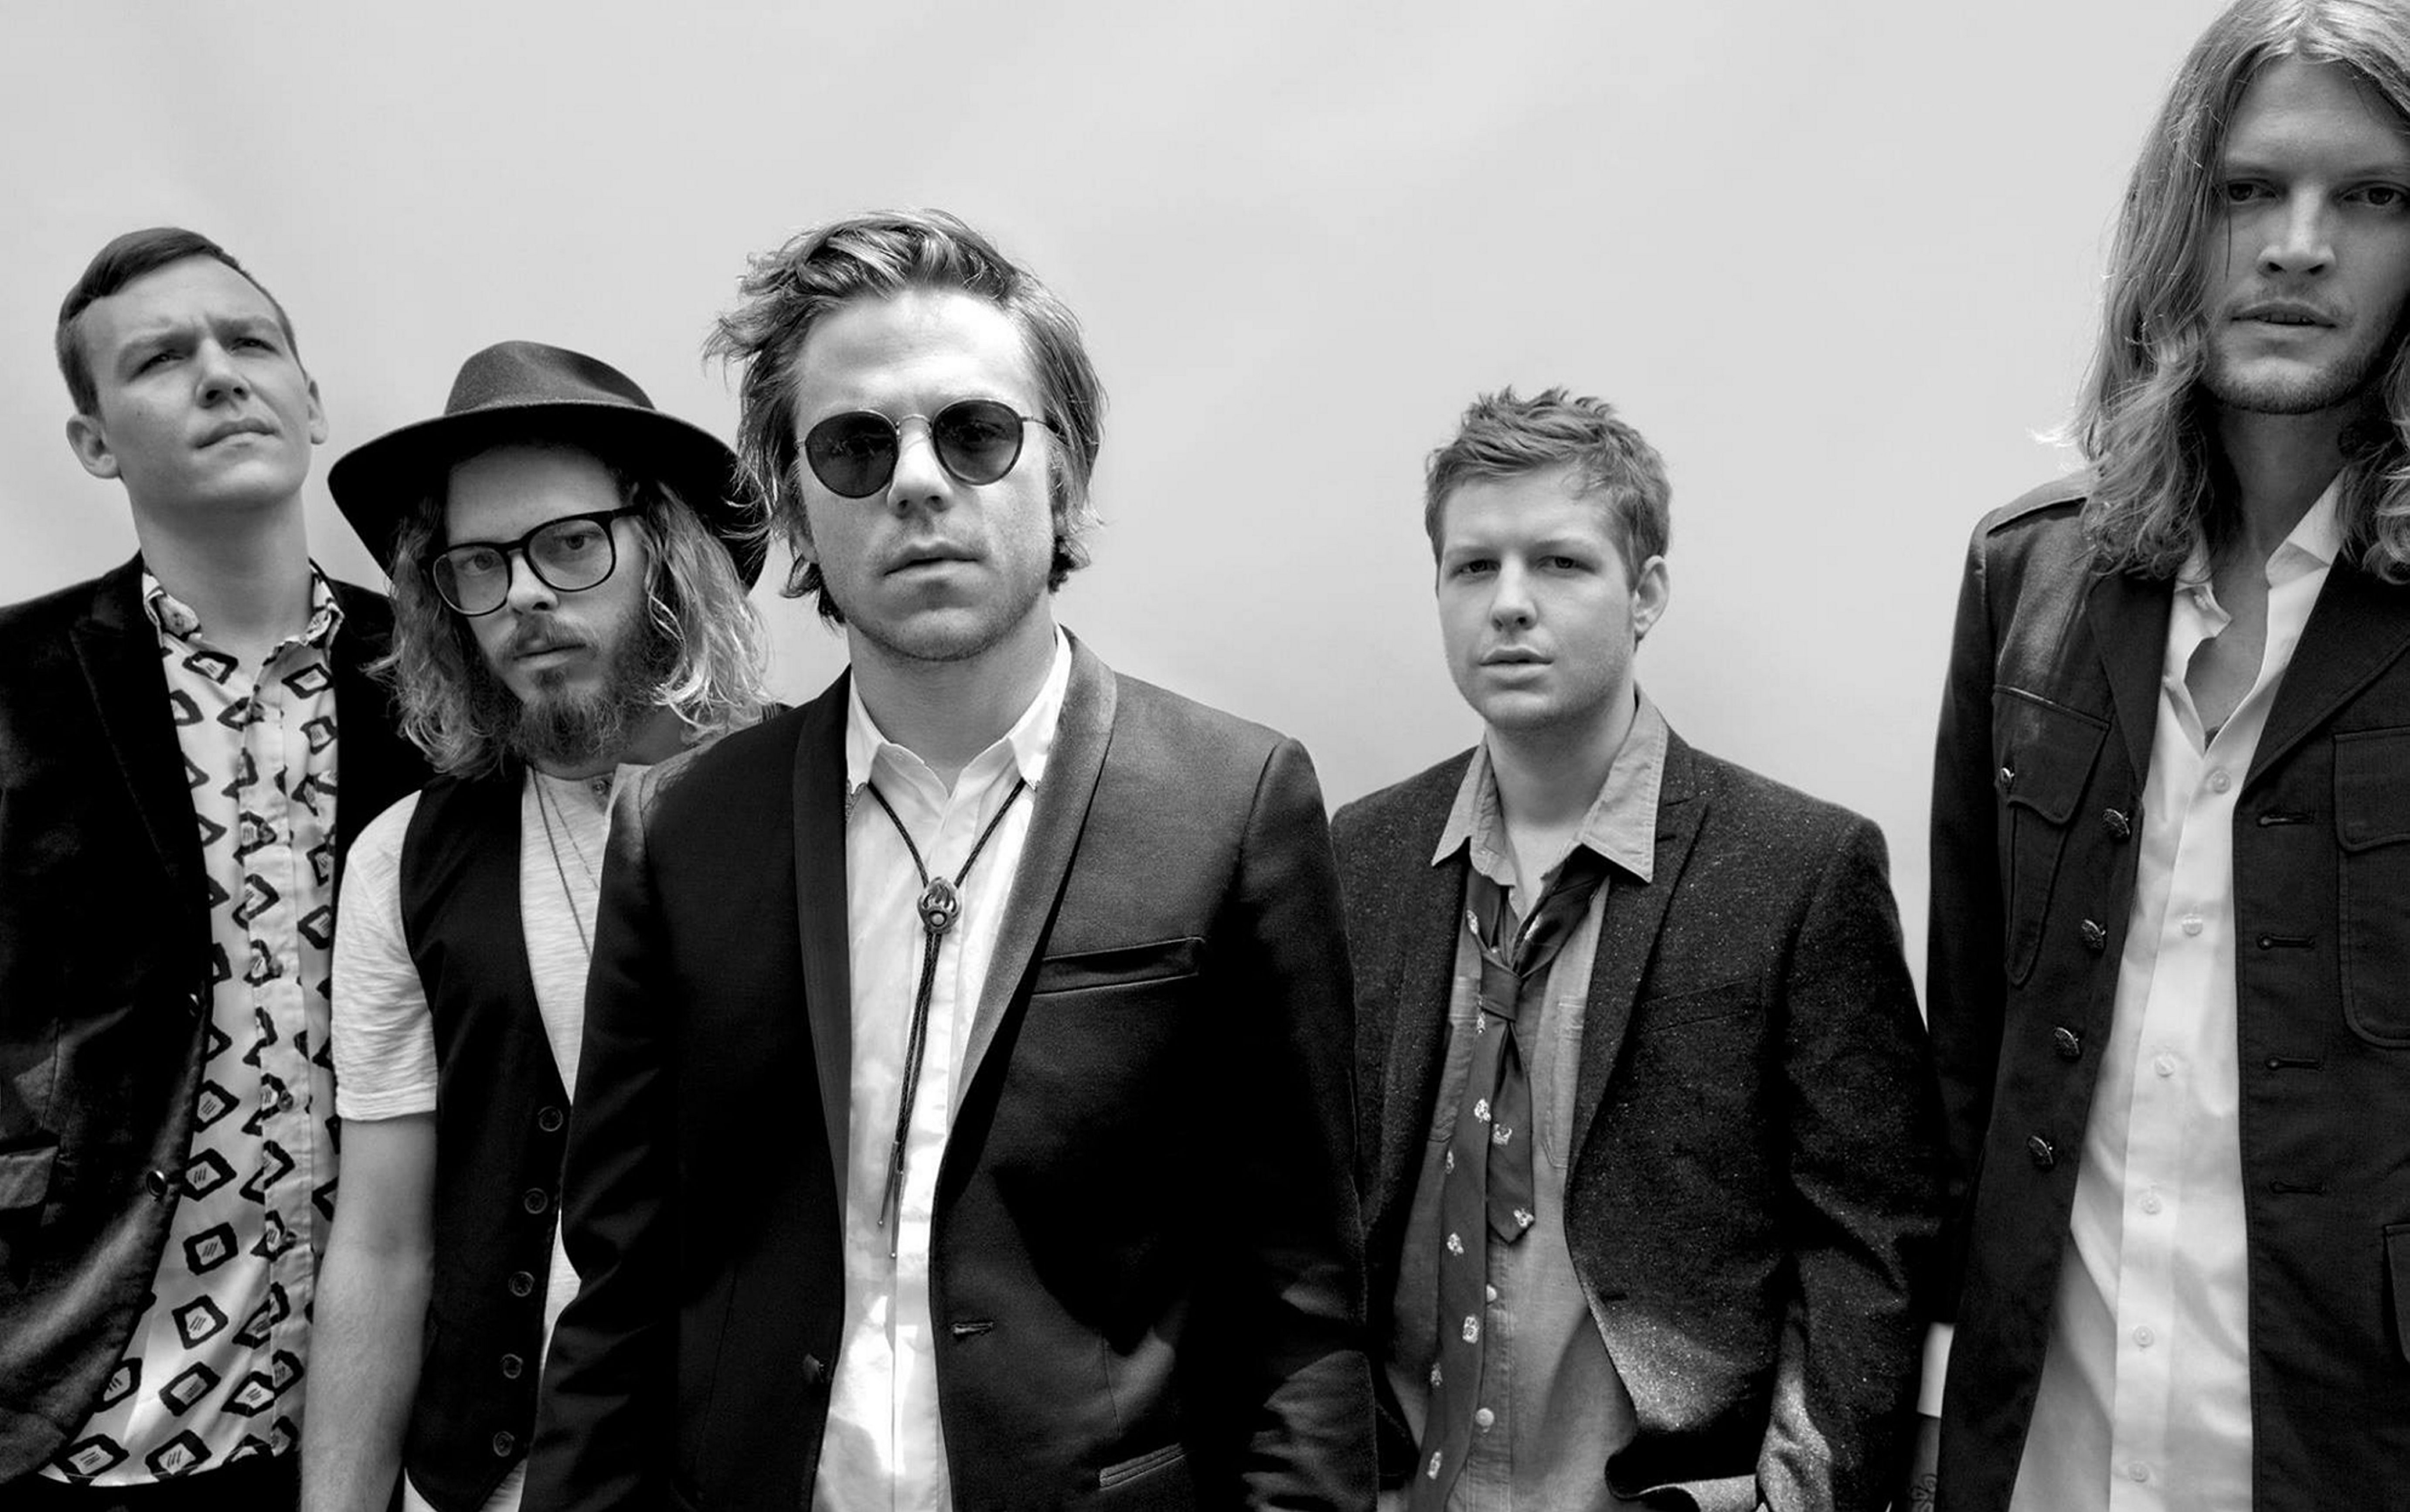 Cage the Elephant is part of the Kerfuffle concert event Saturday at Canalside.